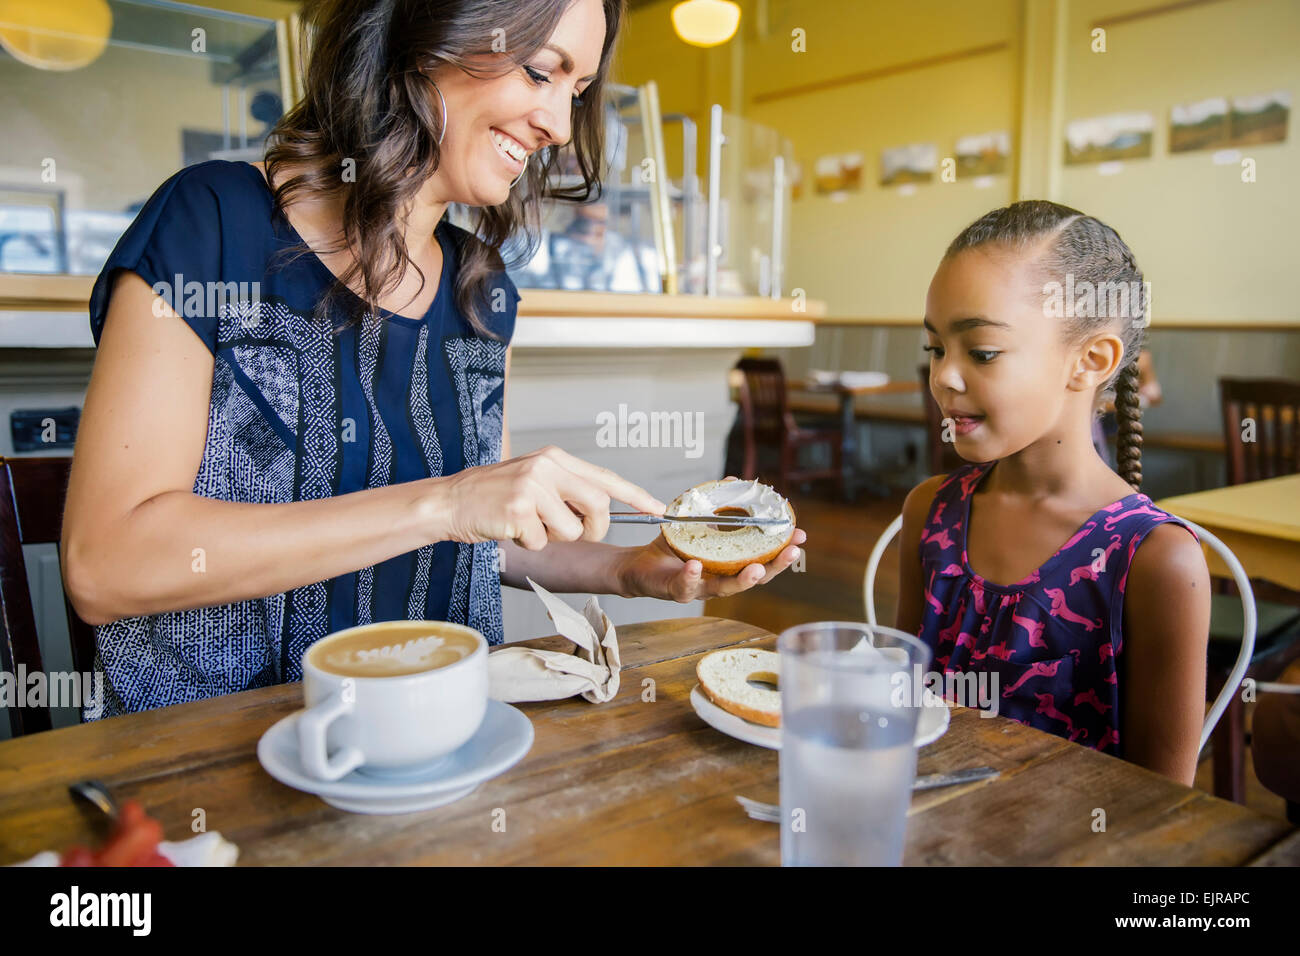 Mother and daughter eating breakfast in cafe Stock Photo